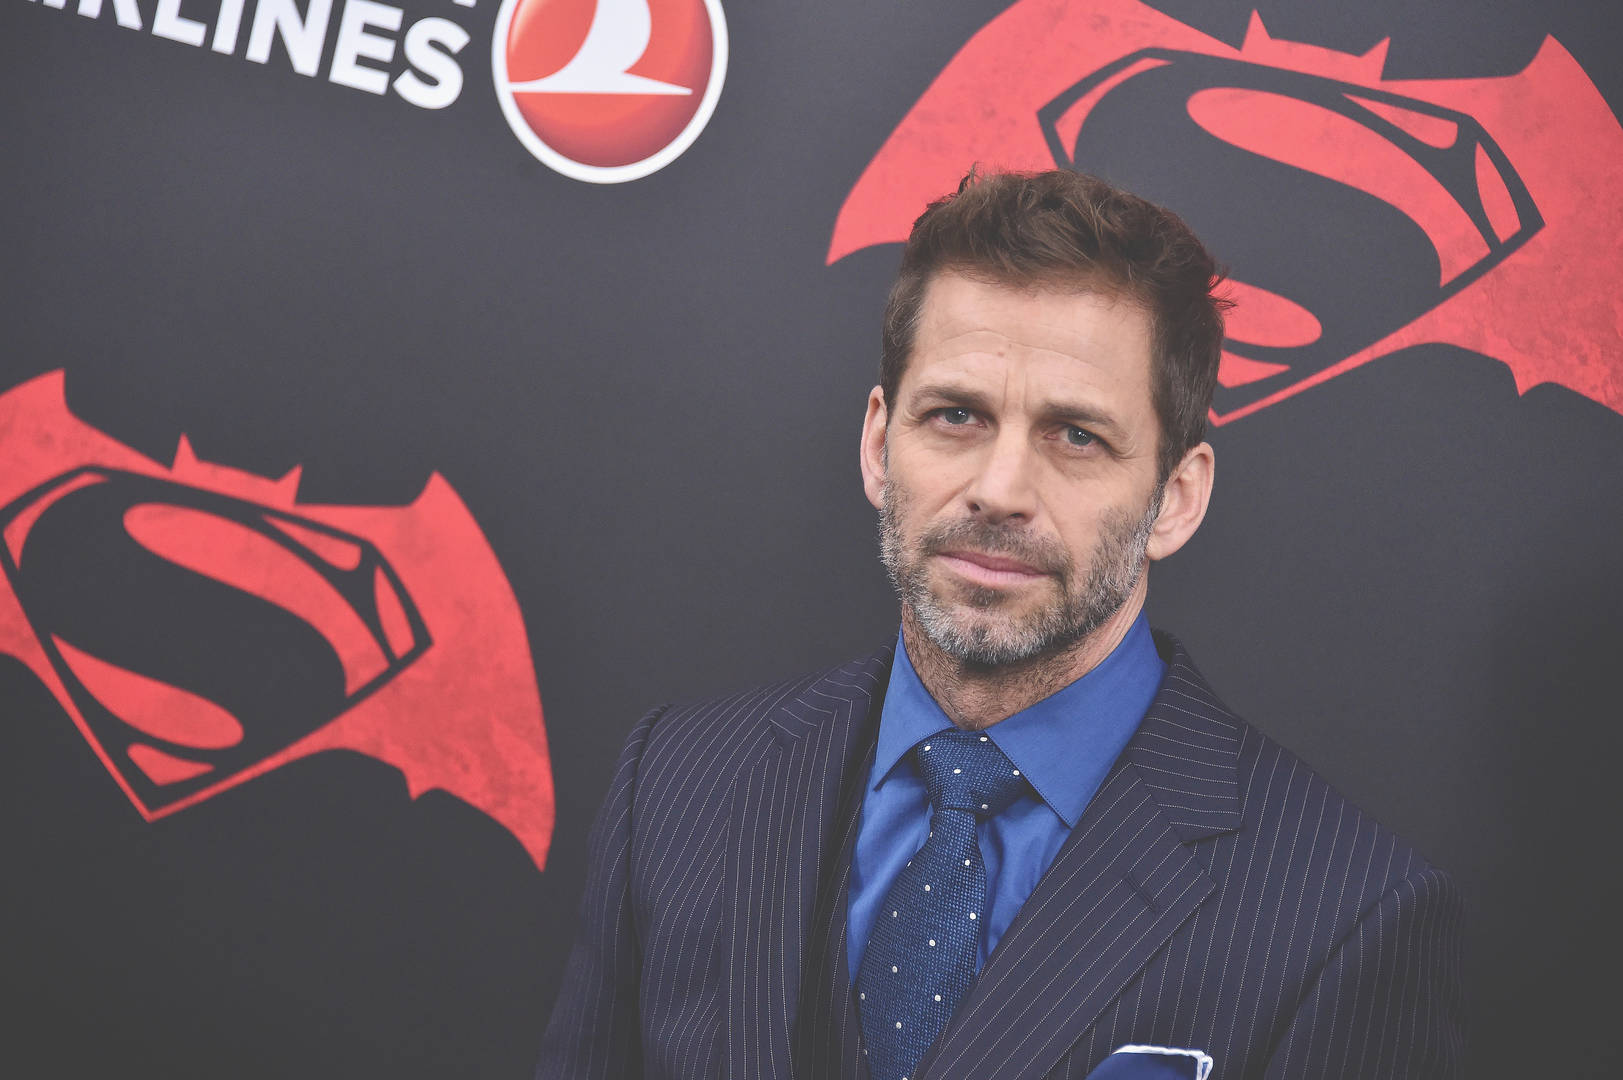 Actor Confirms He Played Darkseid in Zack Snyder's Justice League